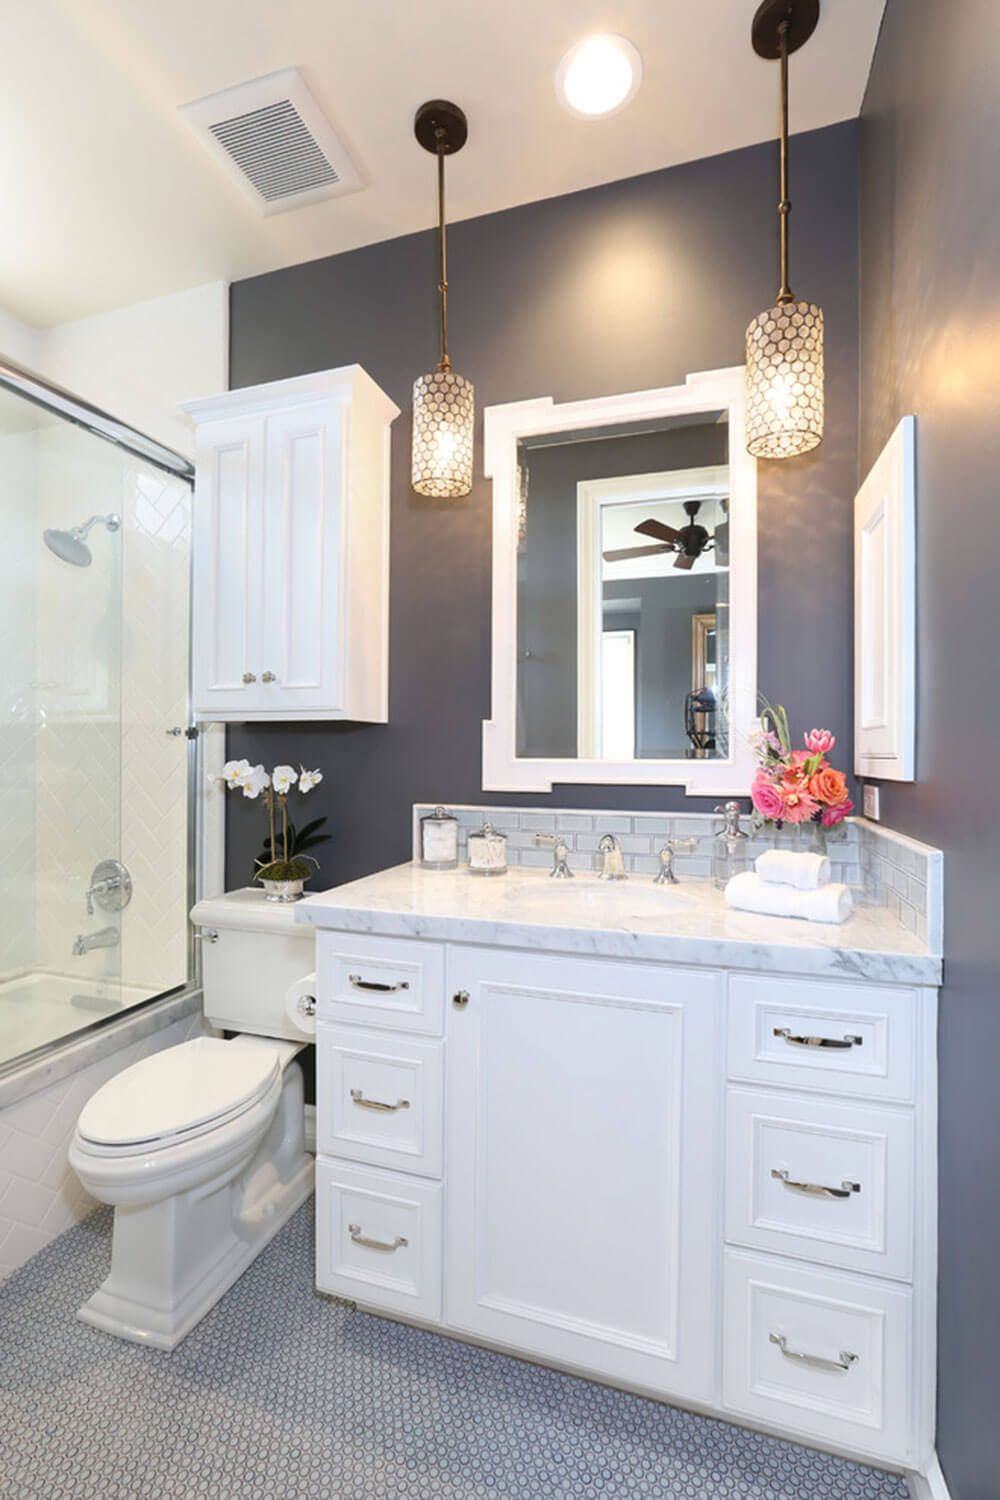 32 Small Bathroom Design Ideas for Every Taste | Dark grey, Dark ...